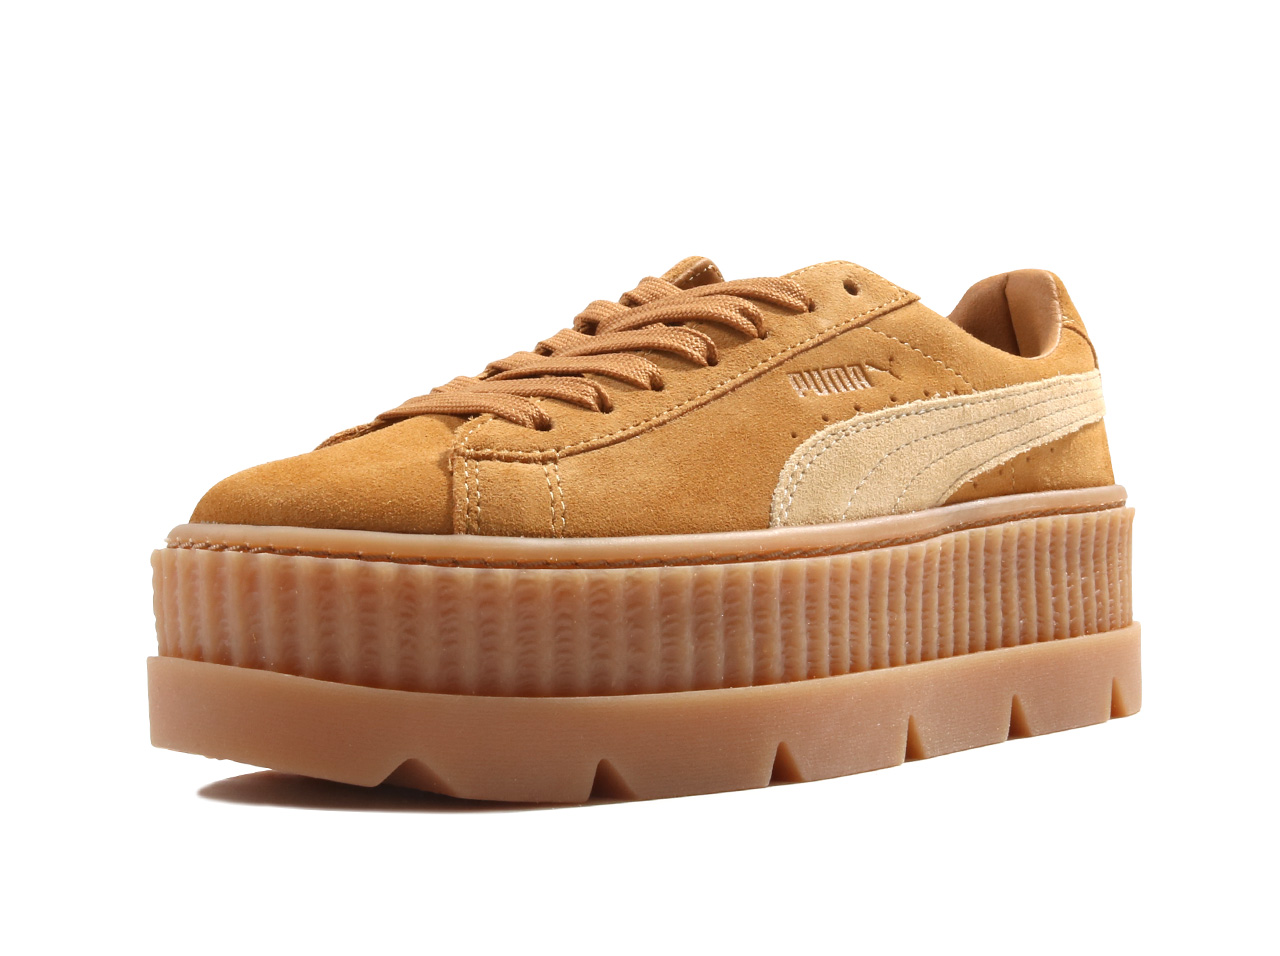 puma_fencty_cleated_creeper_suede_wn_s_366268_02